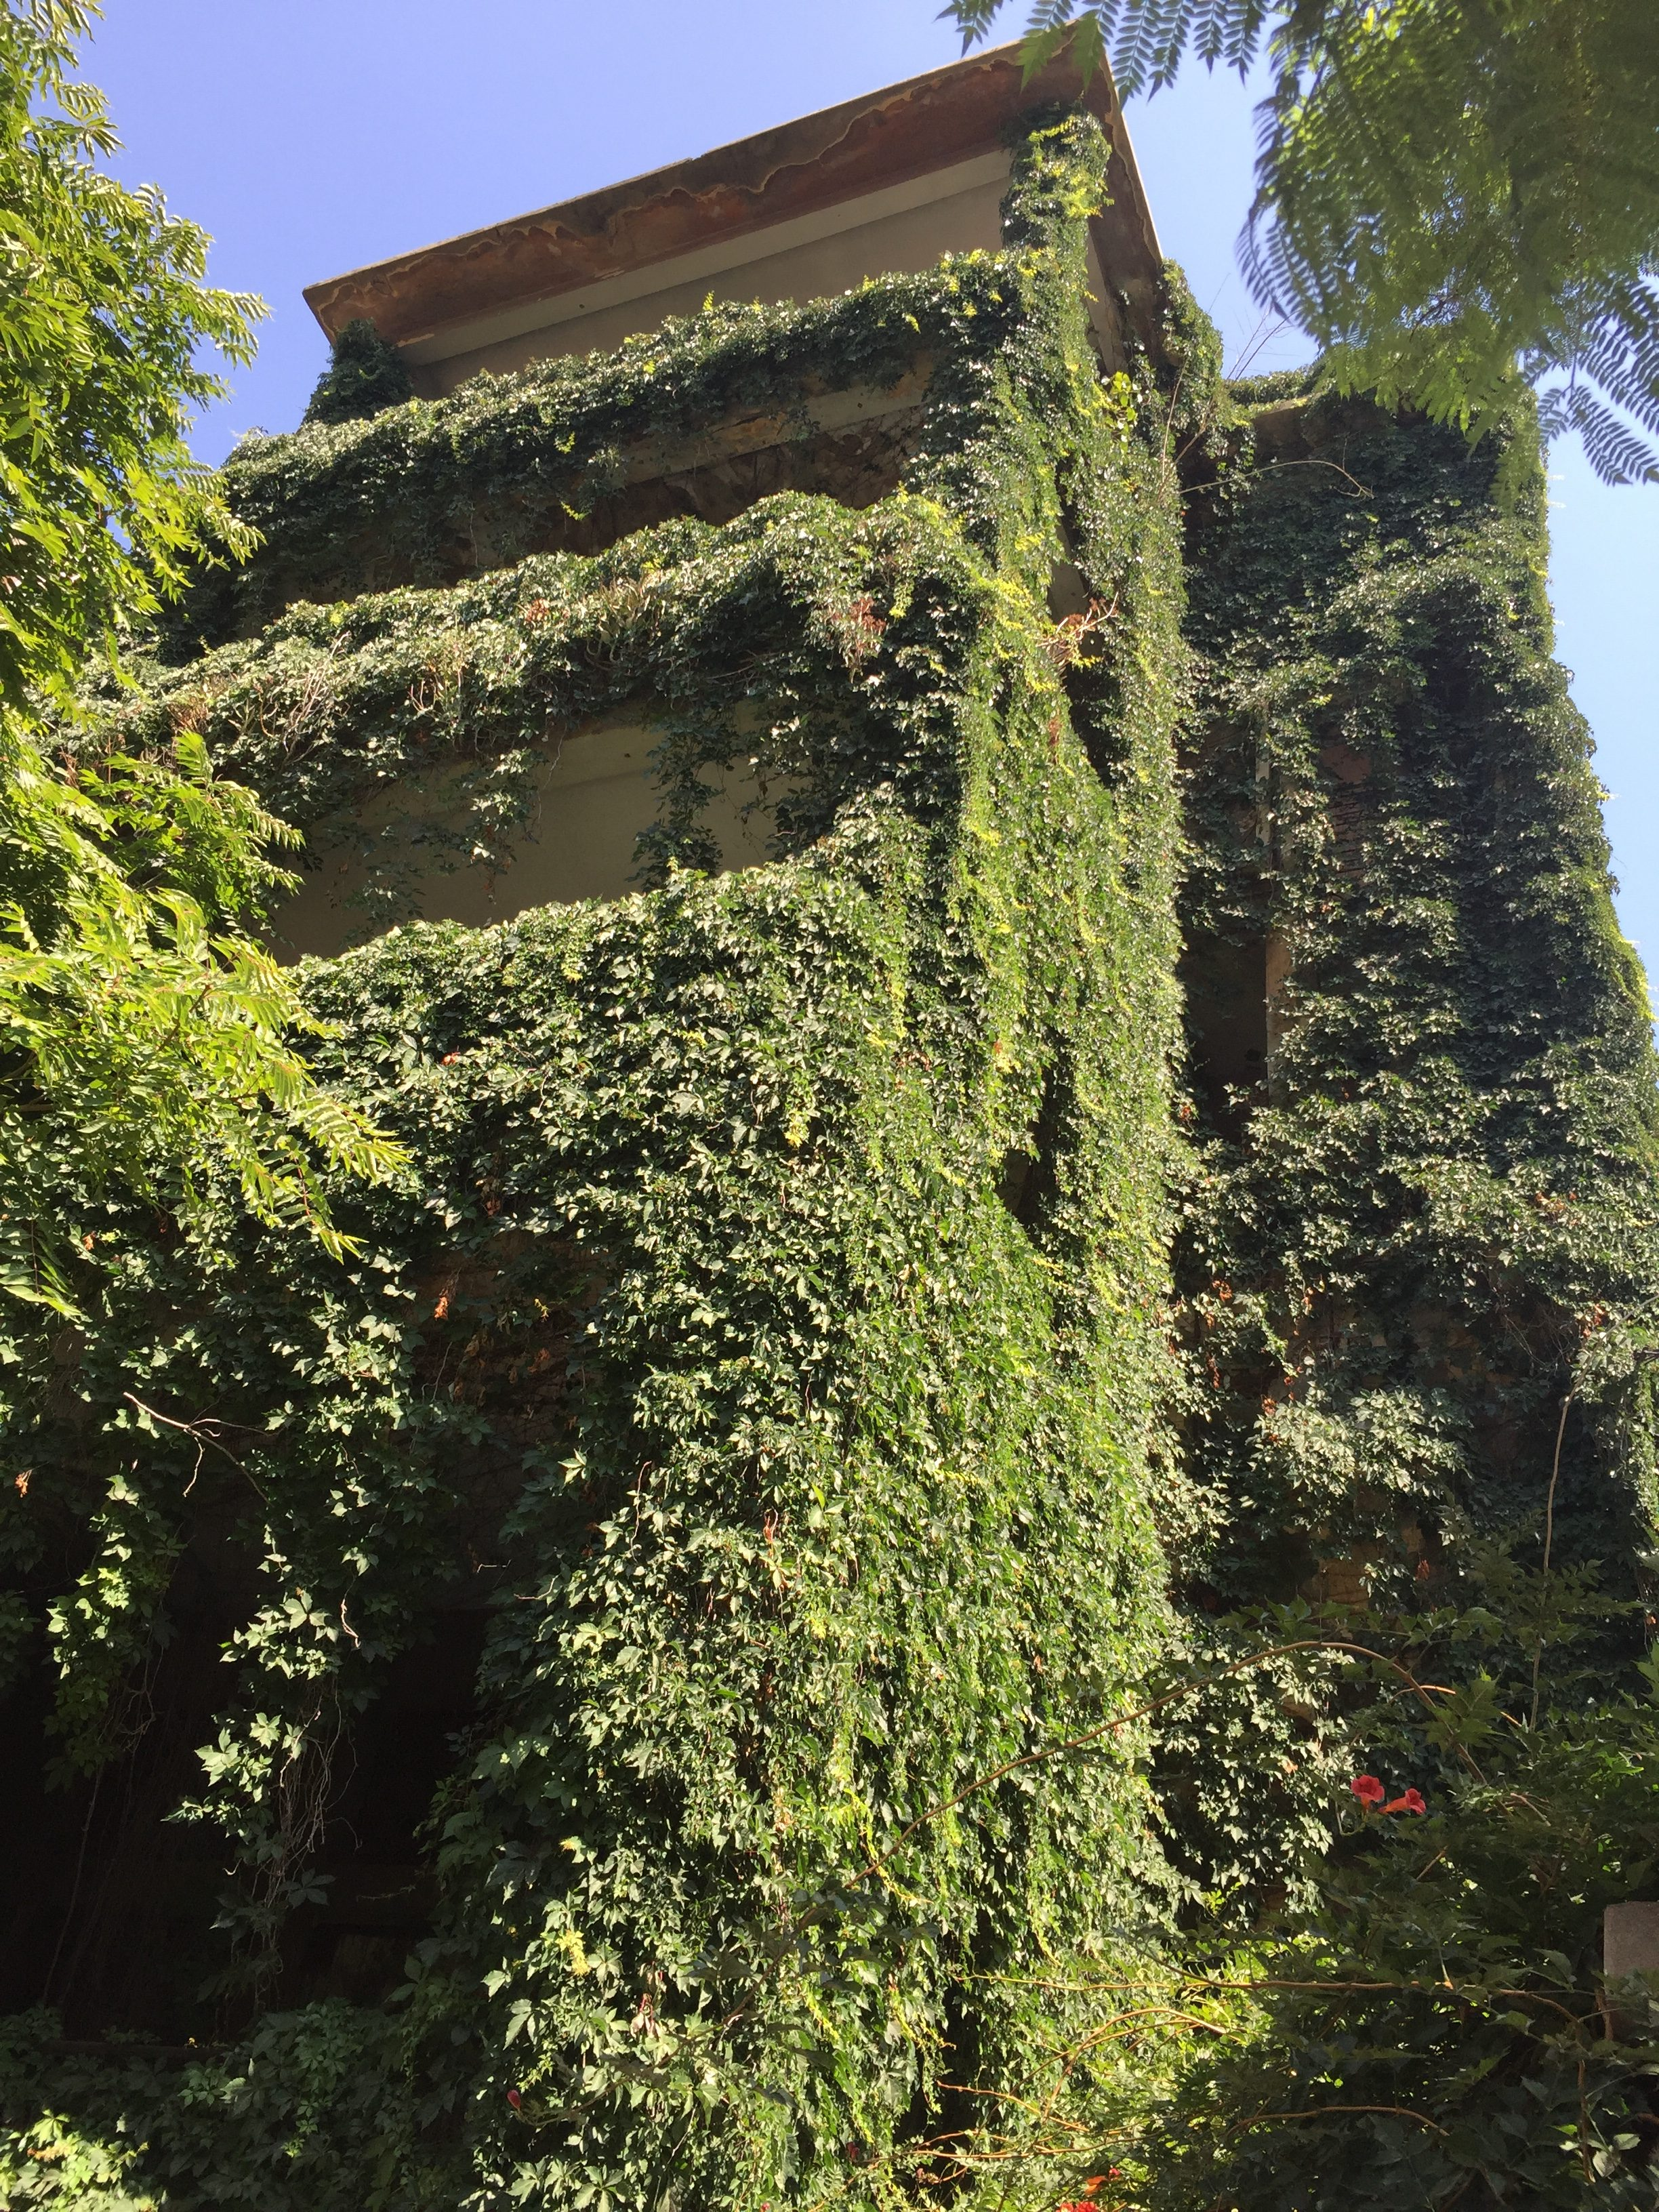 Plants covering an abandoned building in Old Beirut